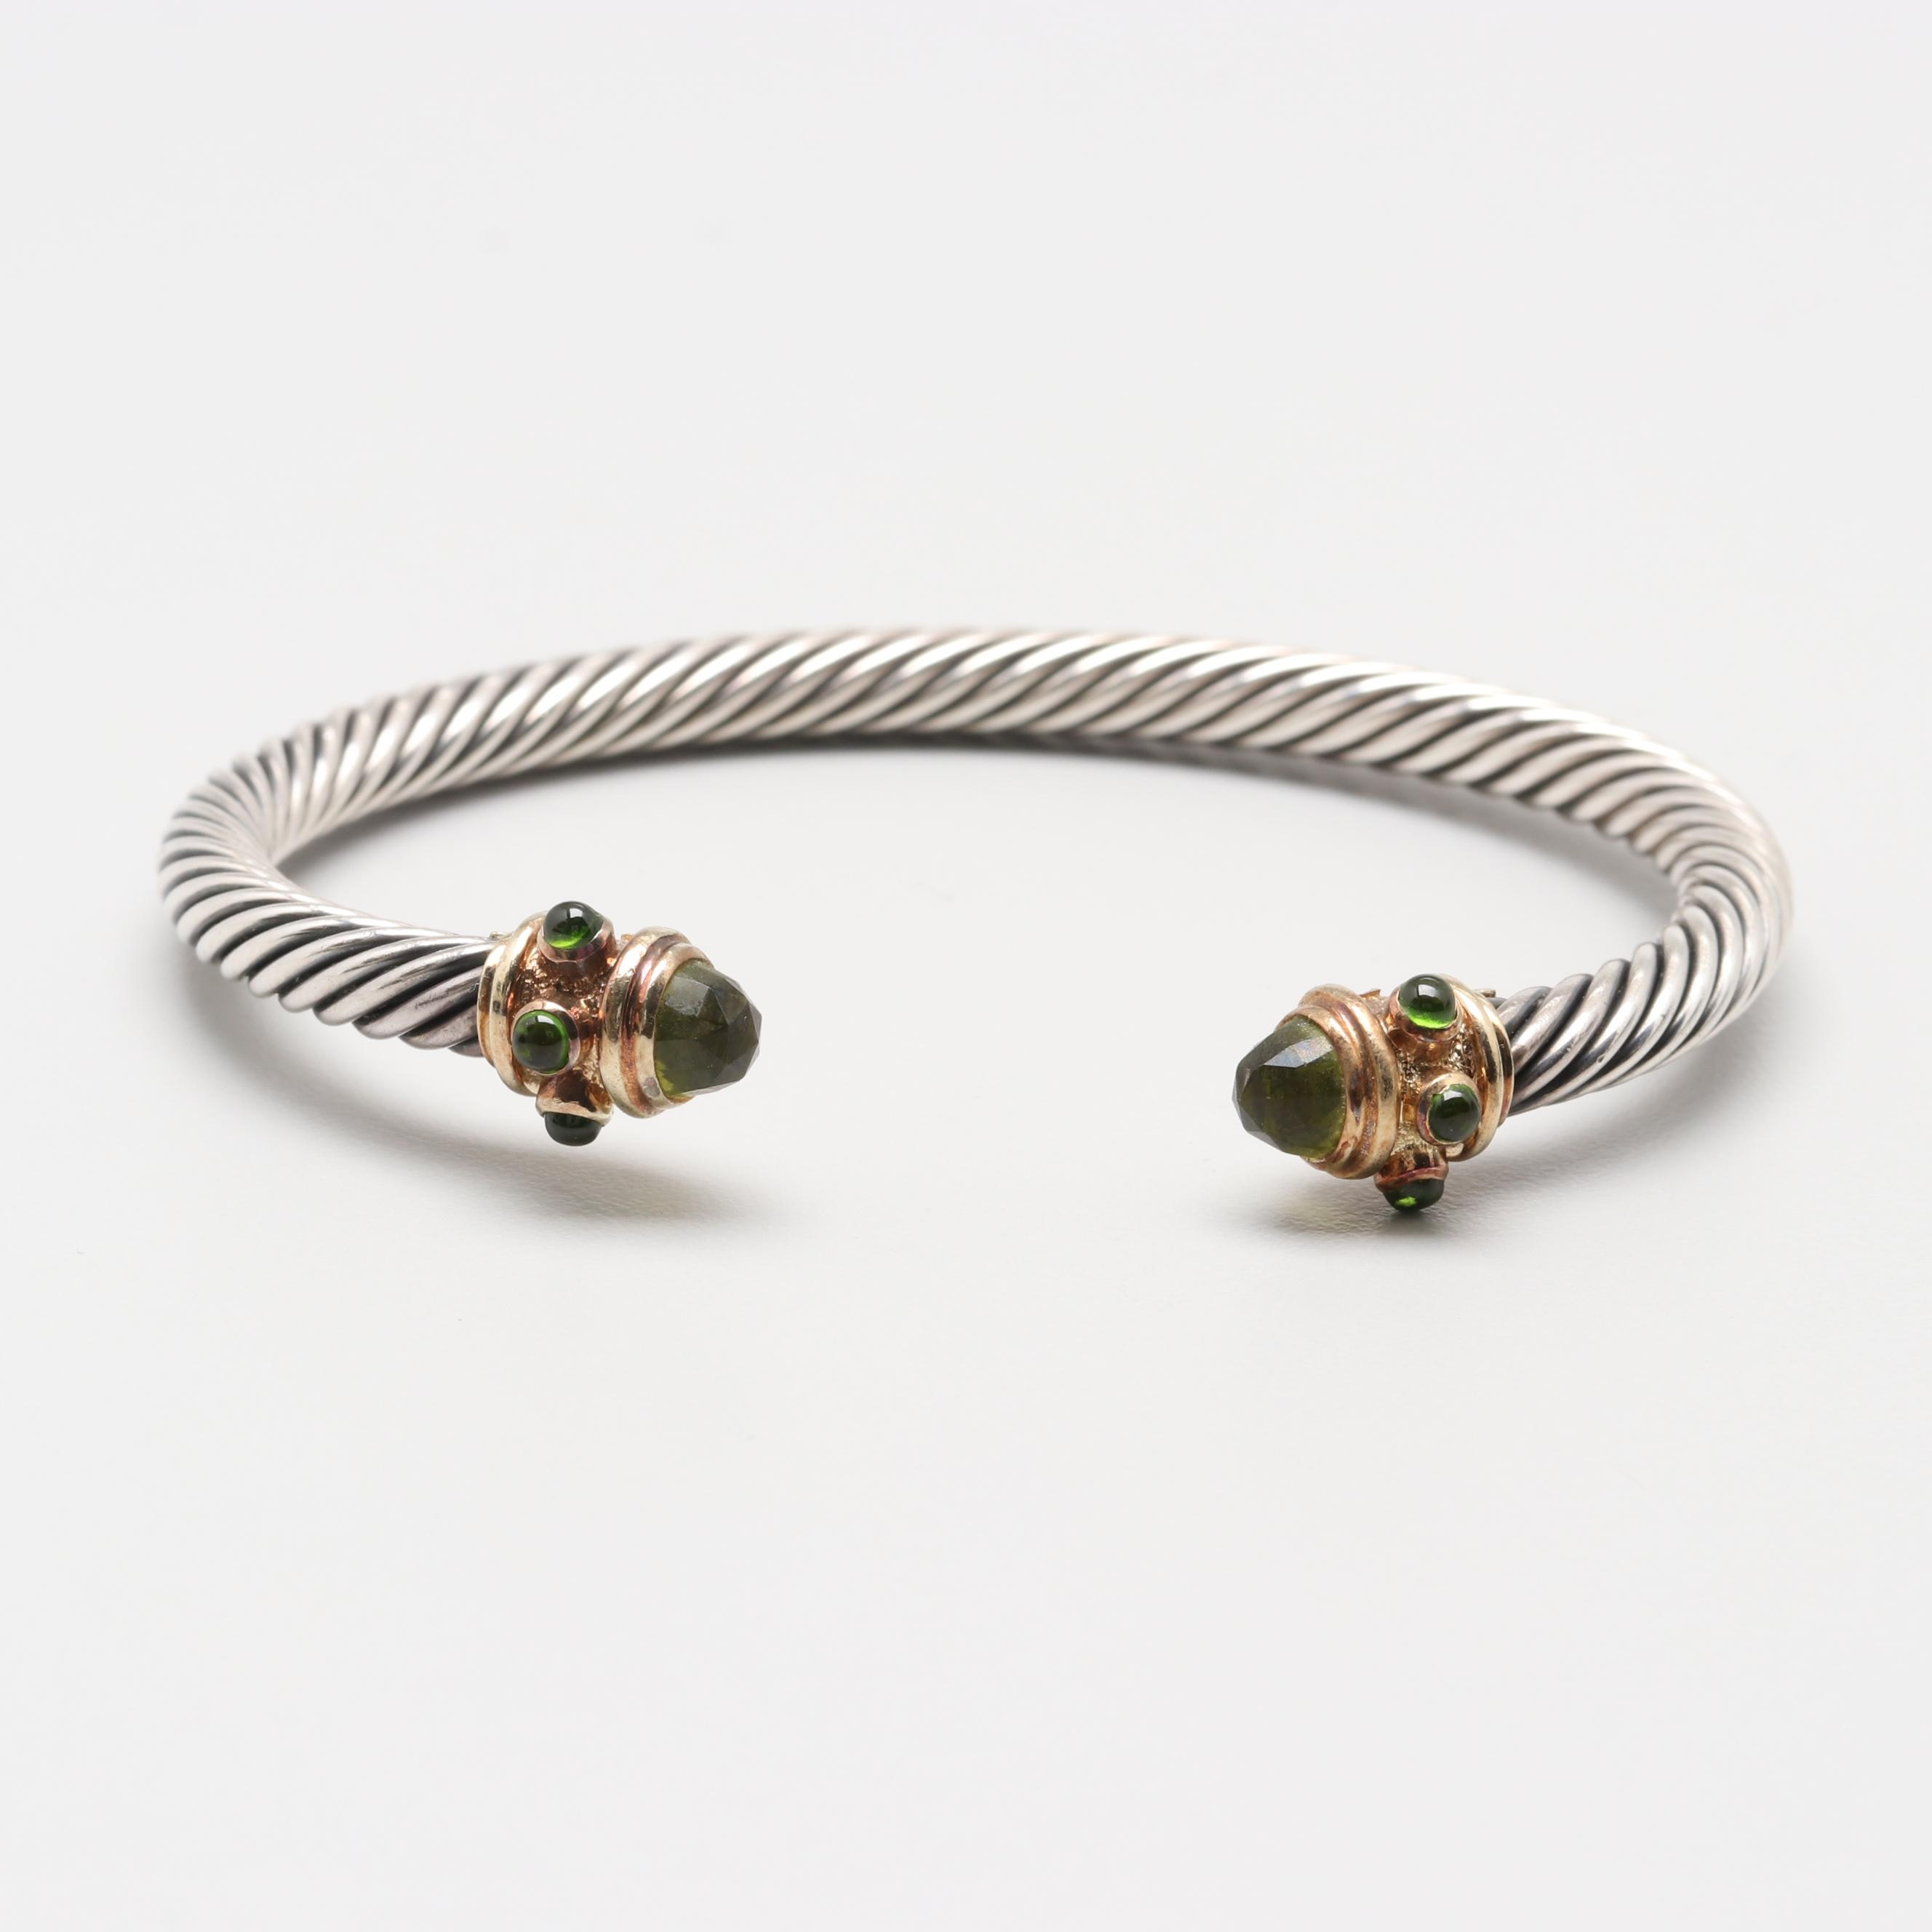 David Yurman Sterling and 14K Yellow Gold Peridot and Chrome Diopside Bracelet